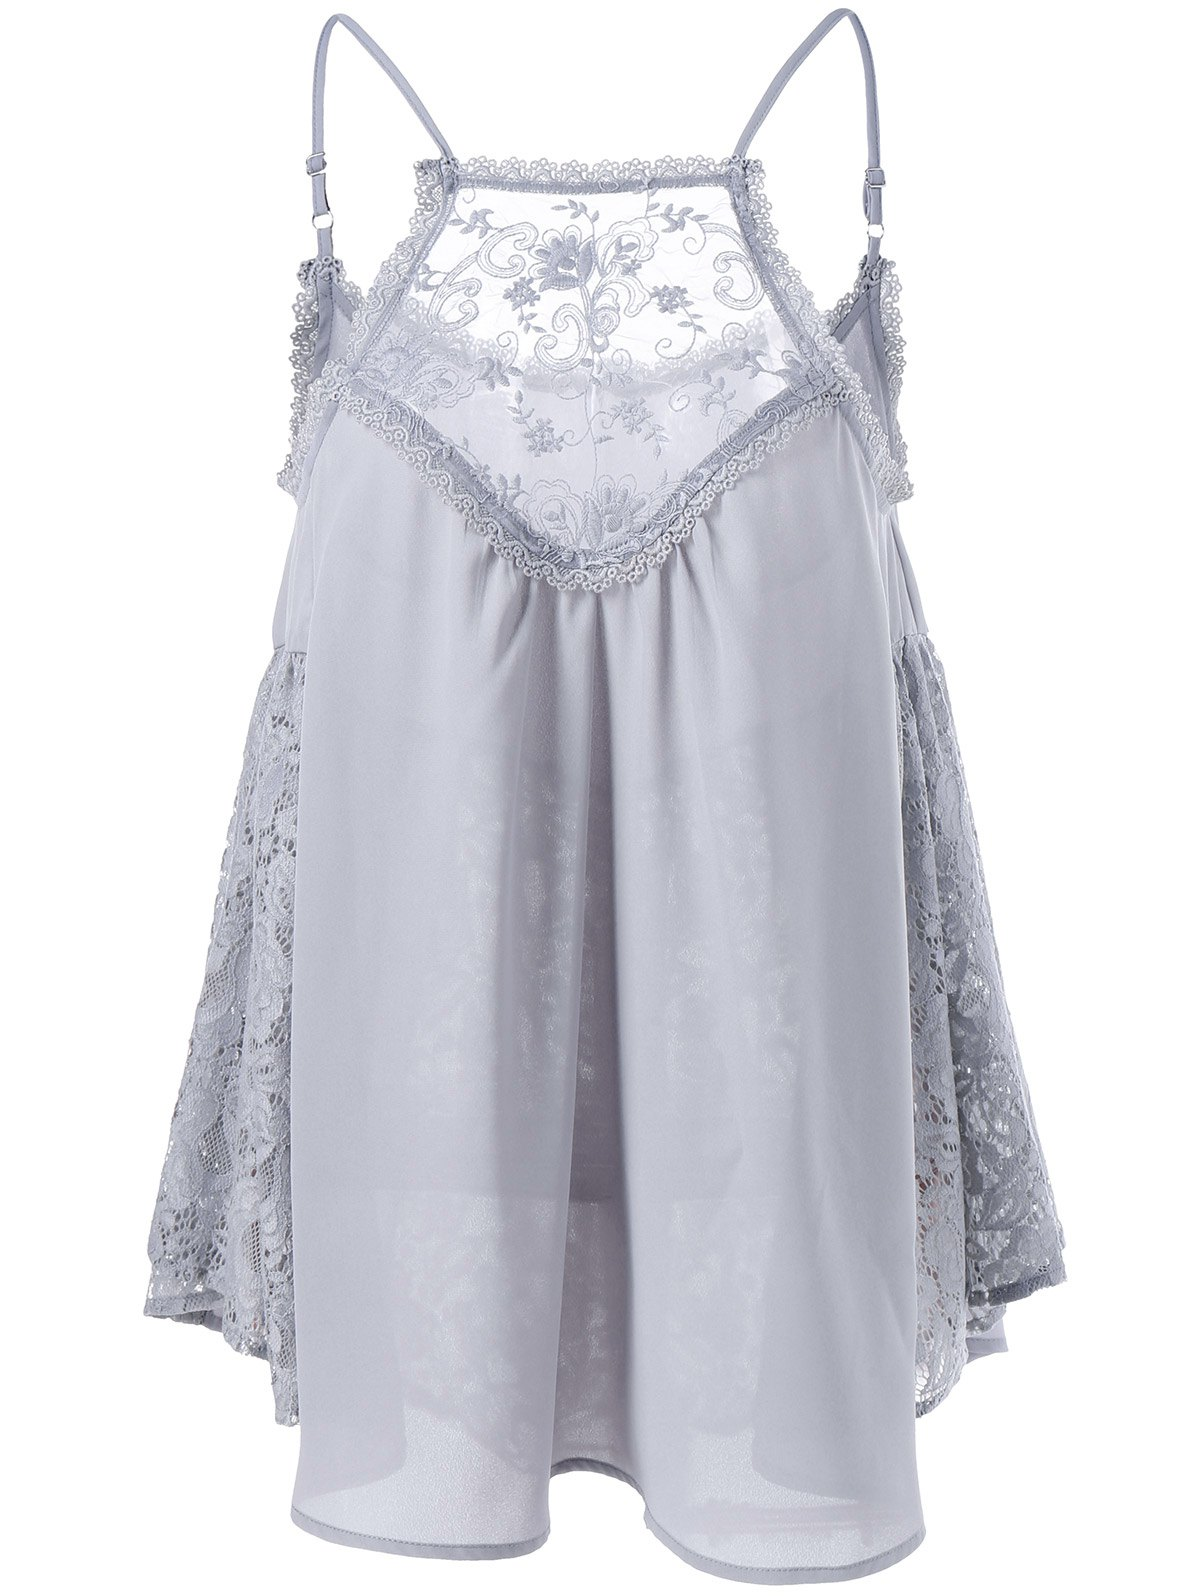 Spaghetti Strap Lace Trim Smock Blouse lace trim embroidered smock top